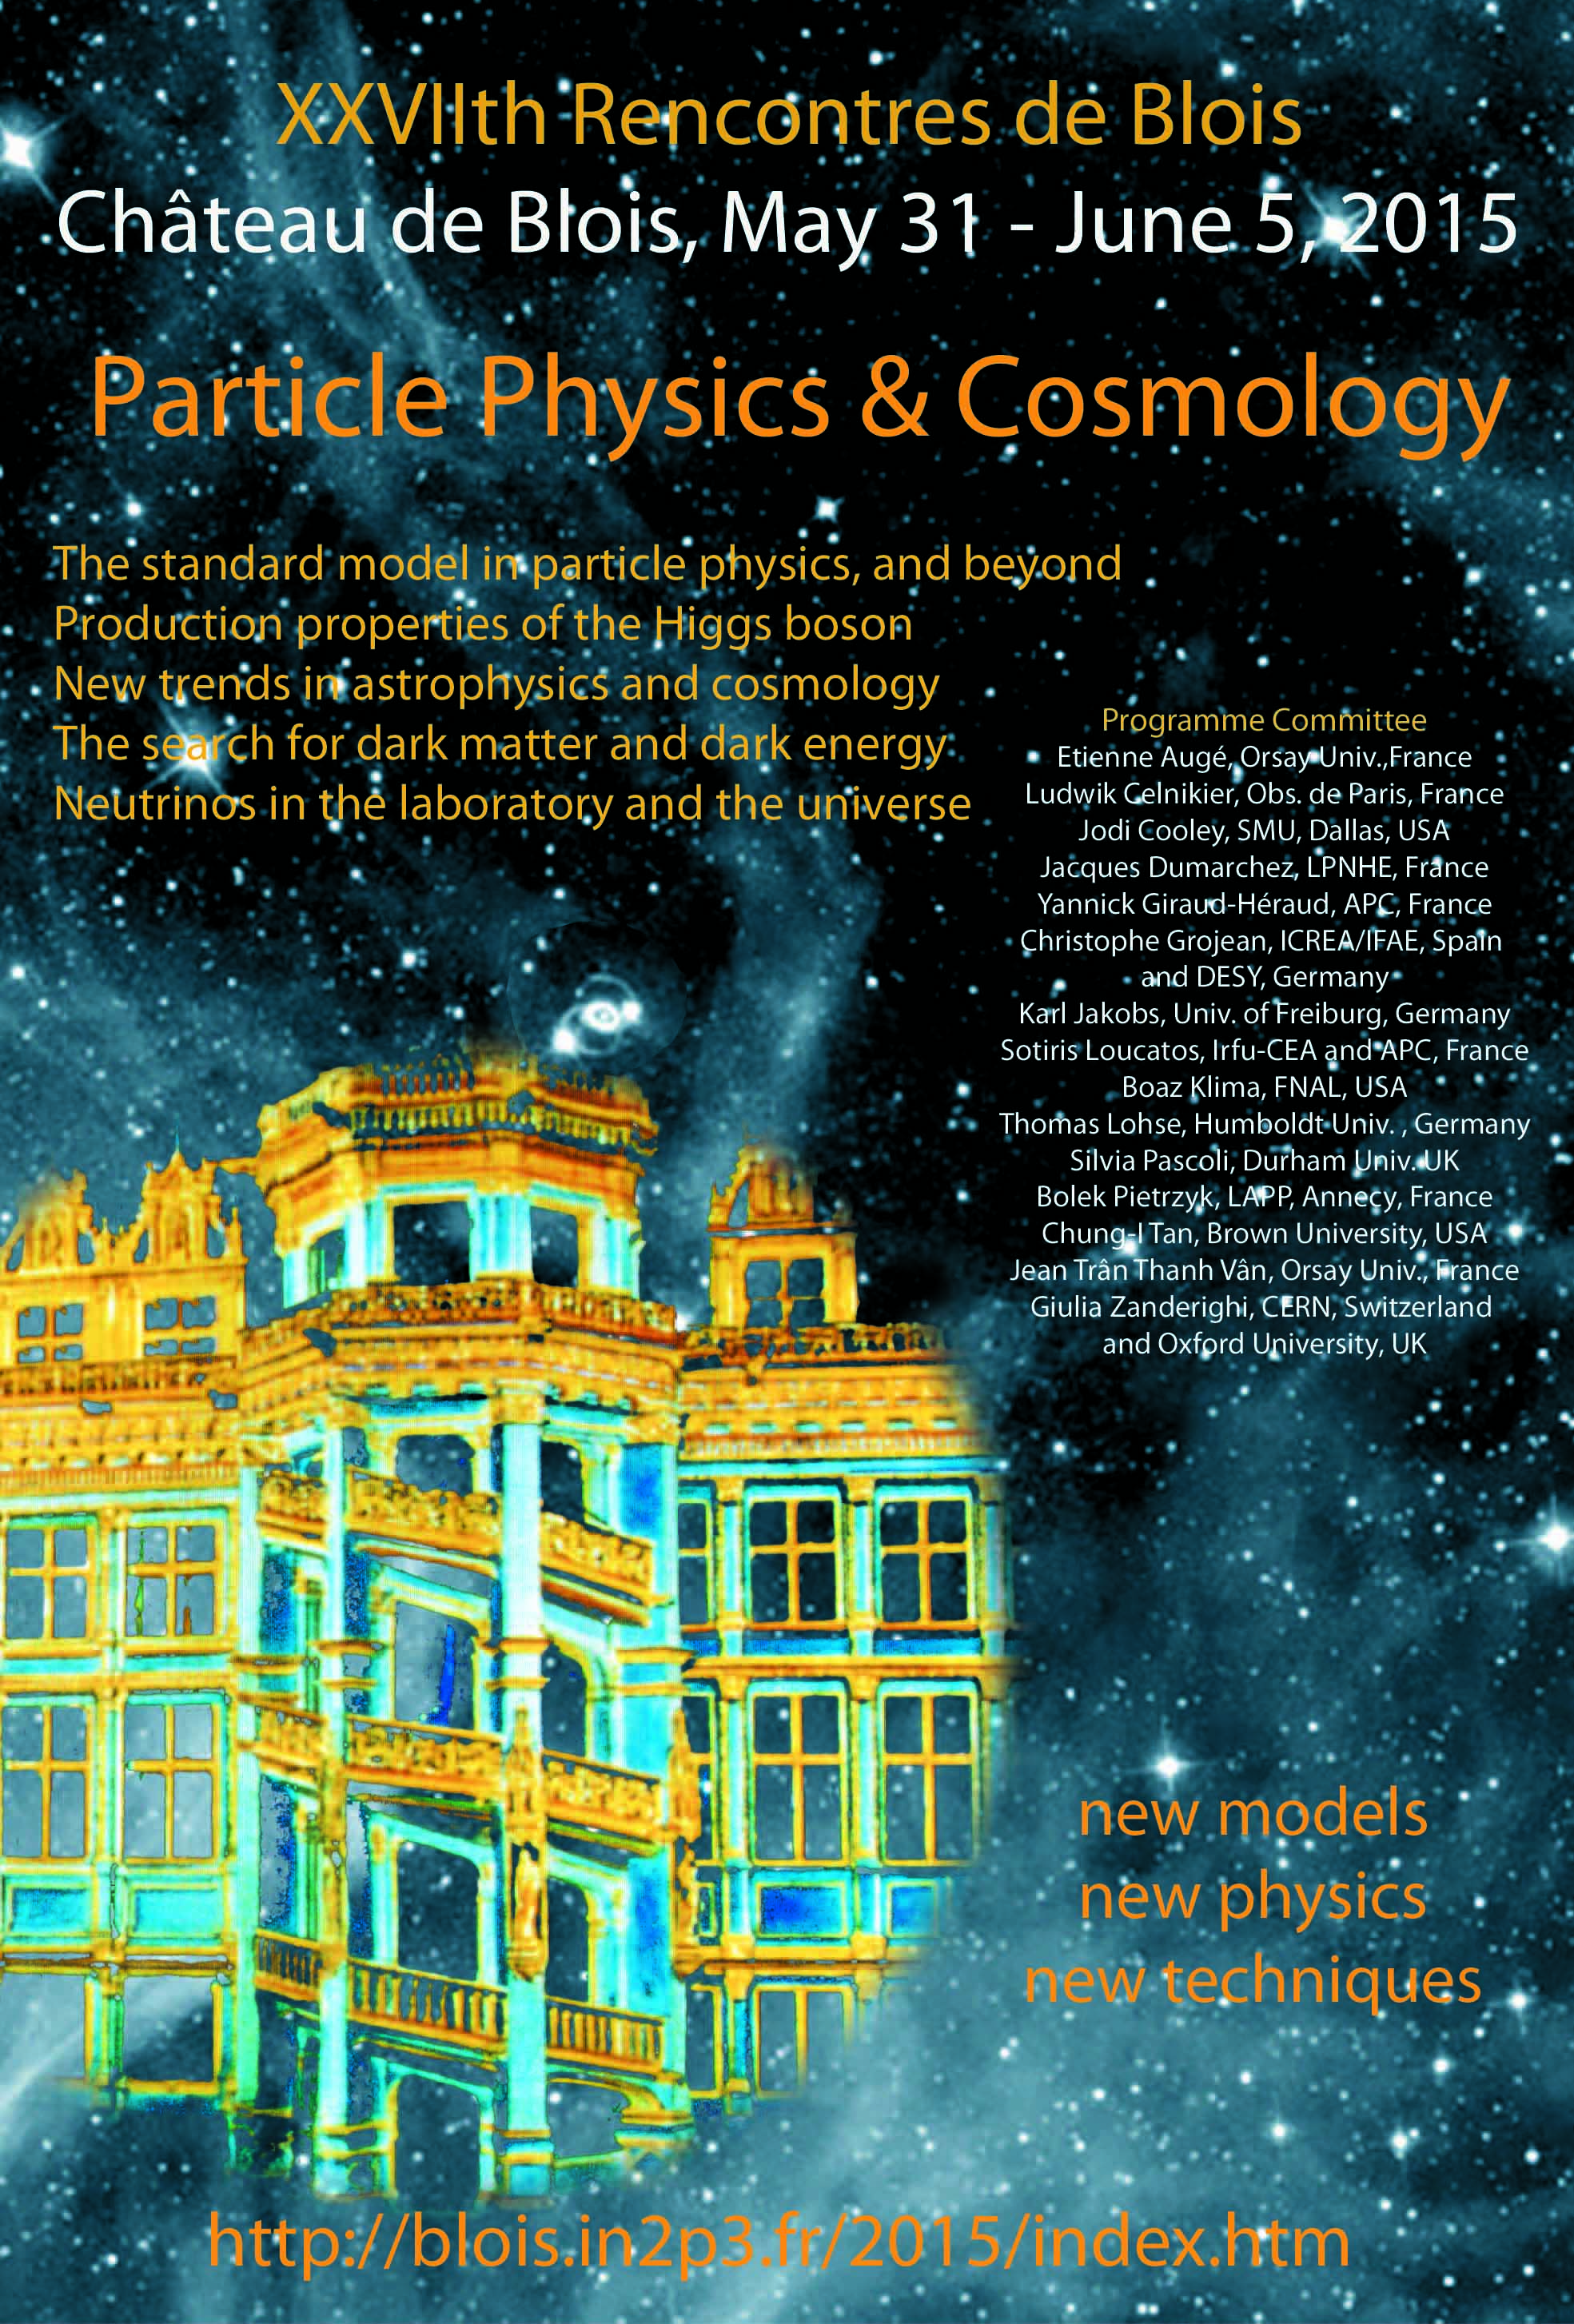 26th rencontres de blois on particle physics and cosmology